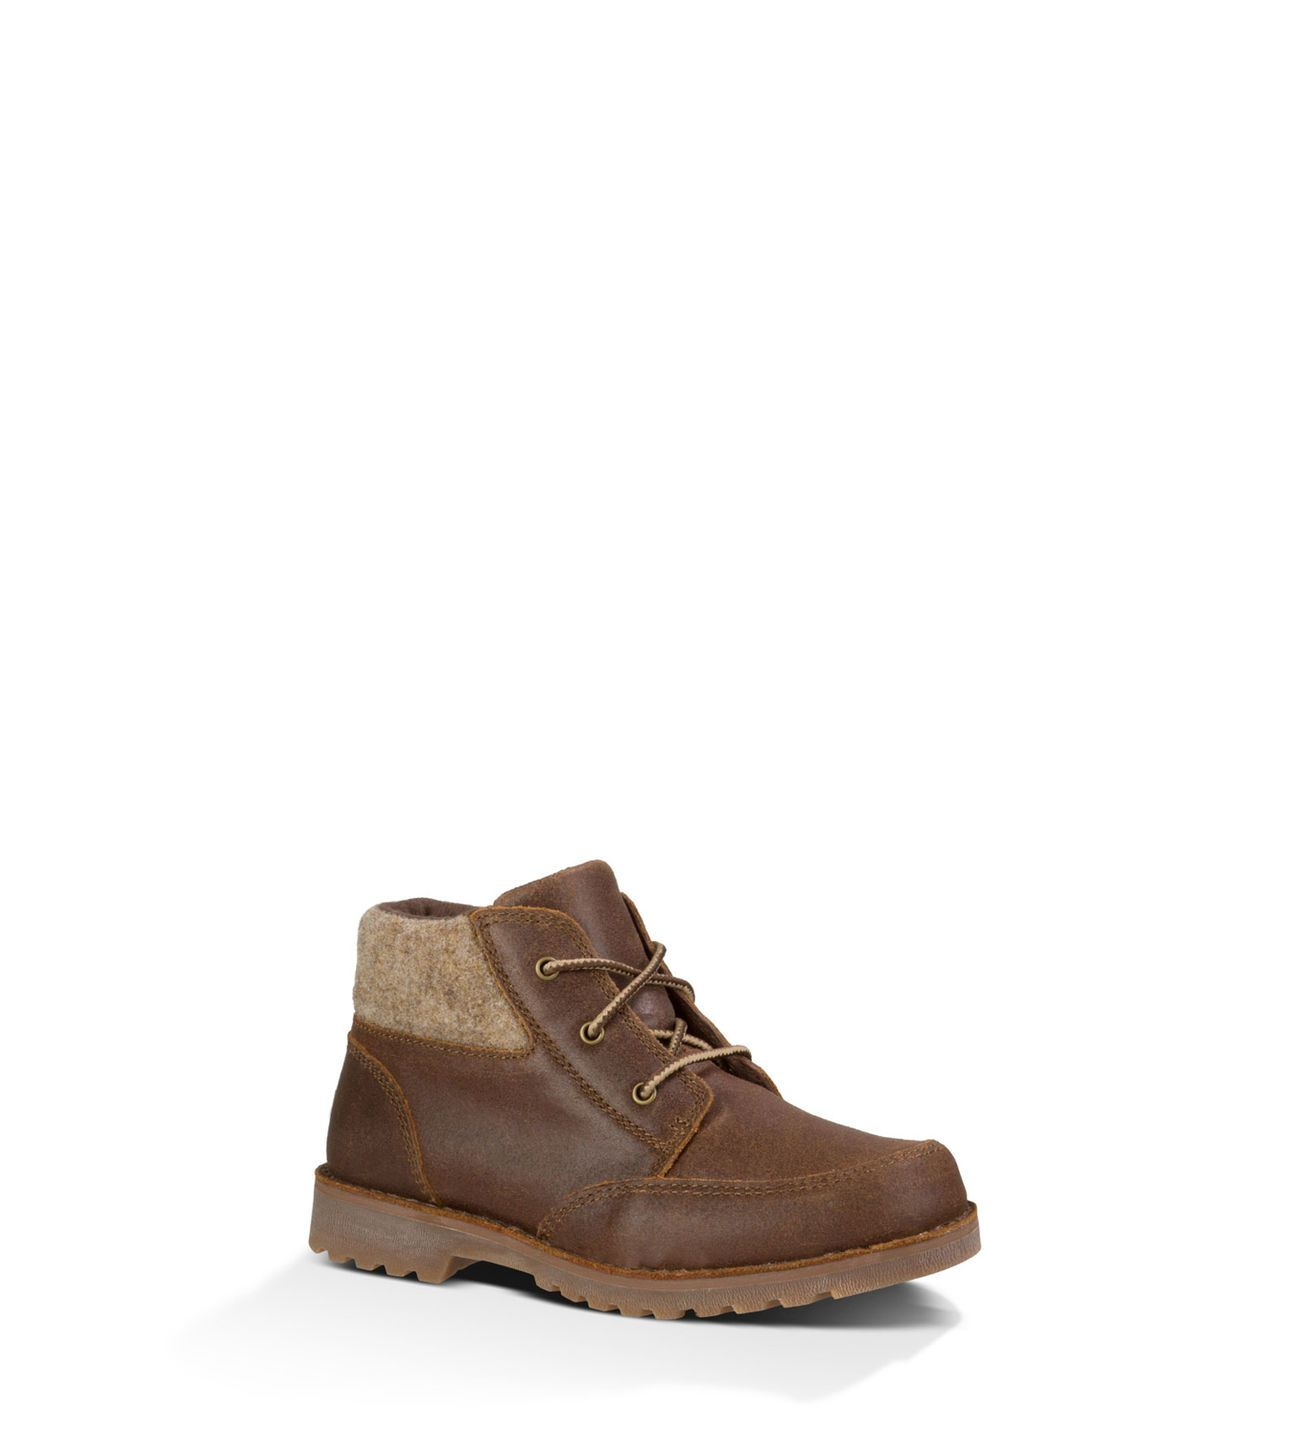 7849ded9fd6 Toddlers' Share this product Orin Wool   Zane's   Boots, Uggs ...